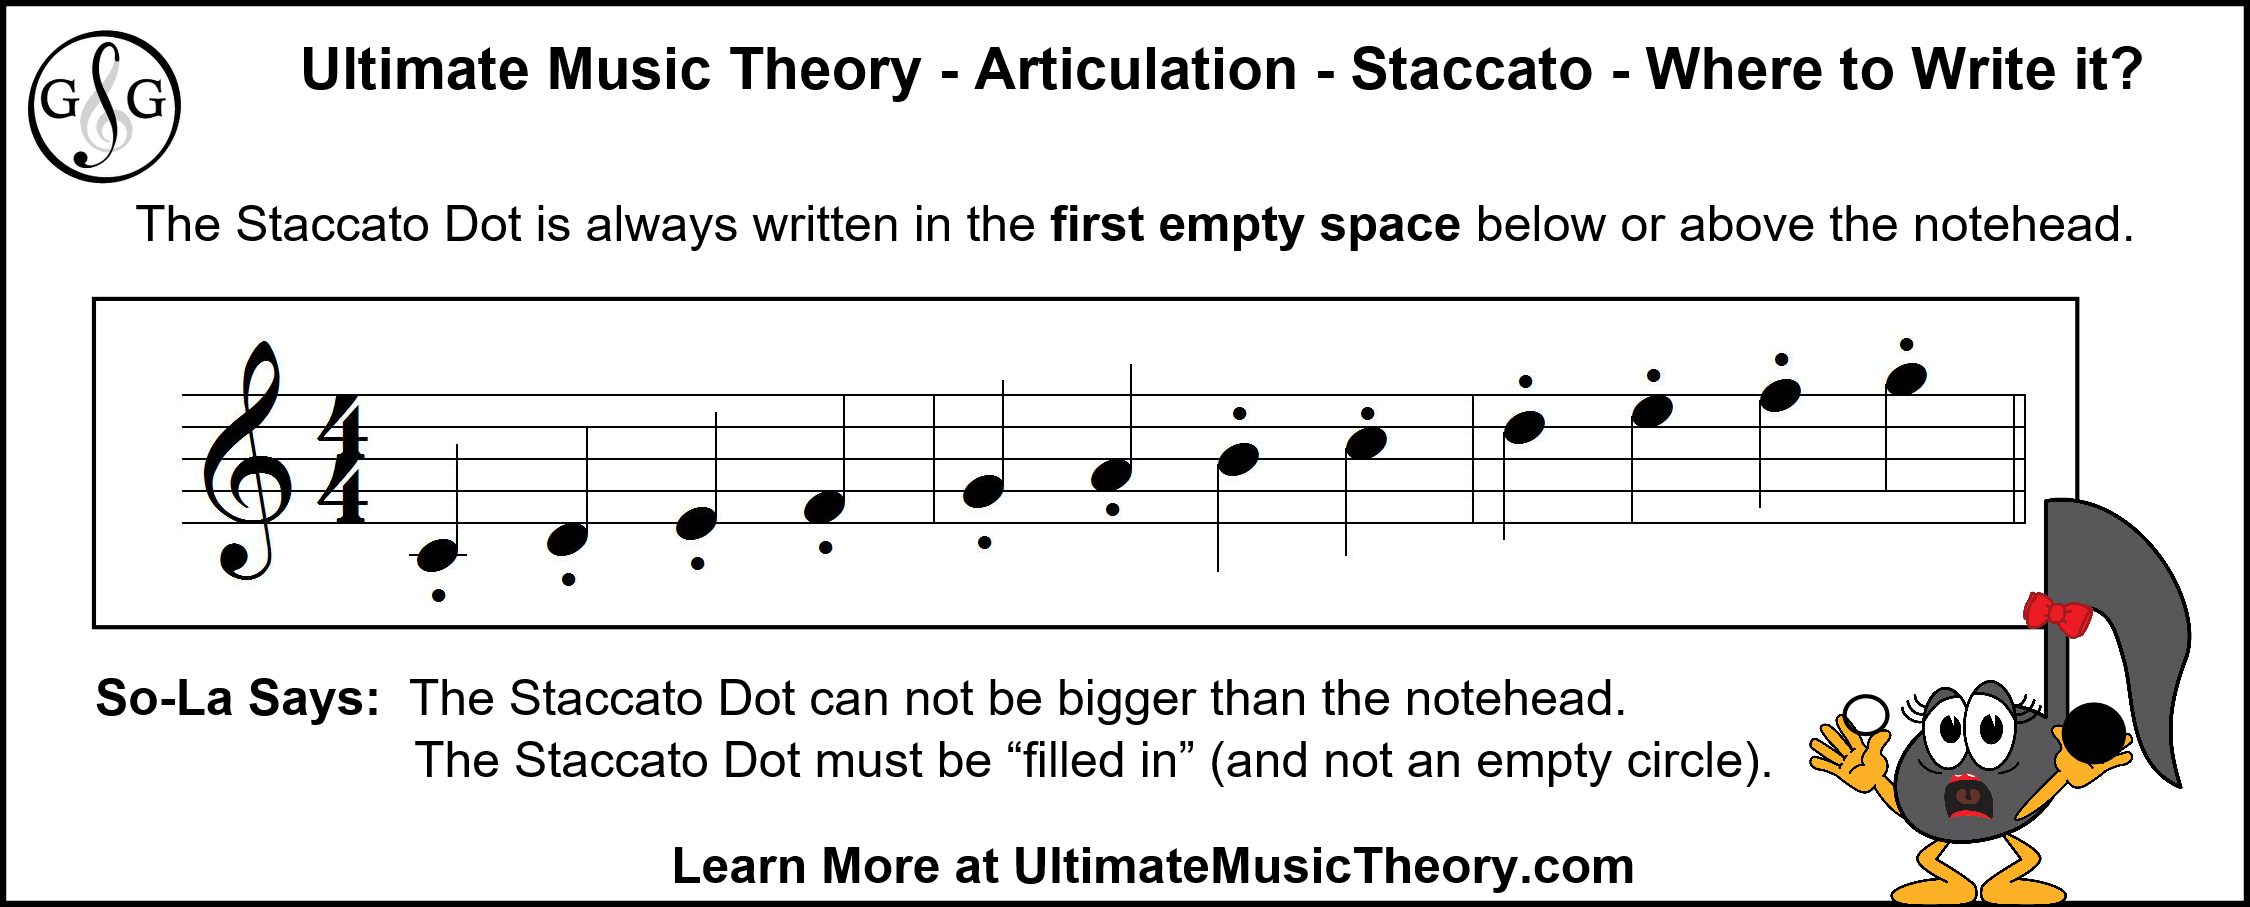 UMT - Articulation - Staccato